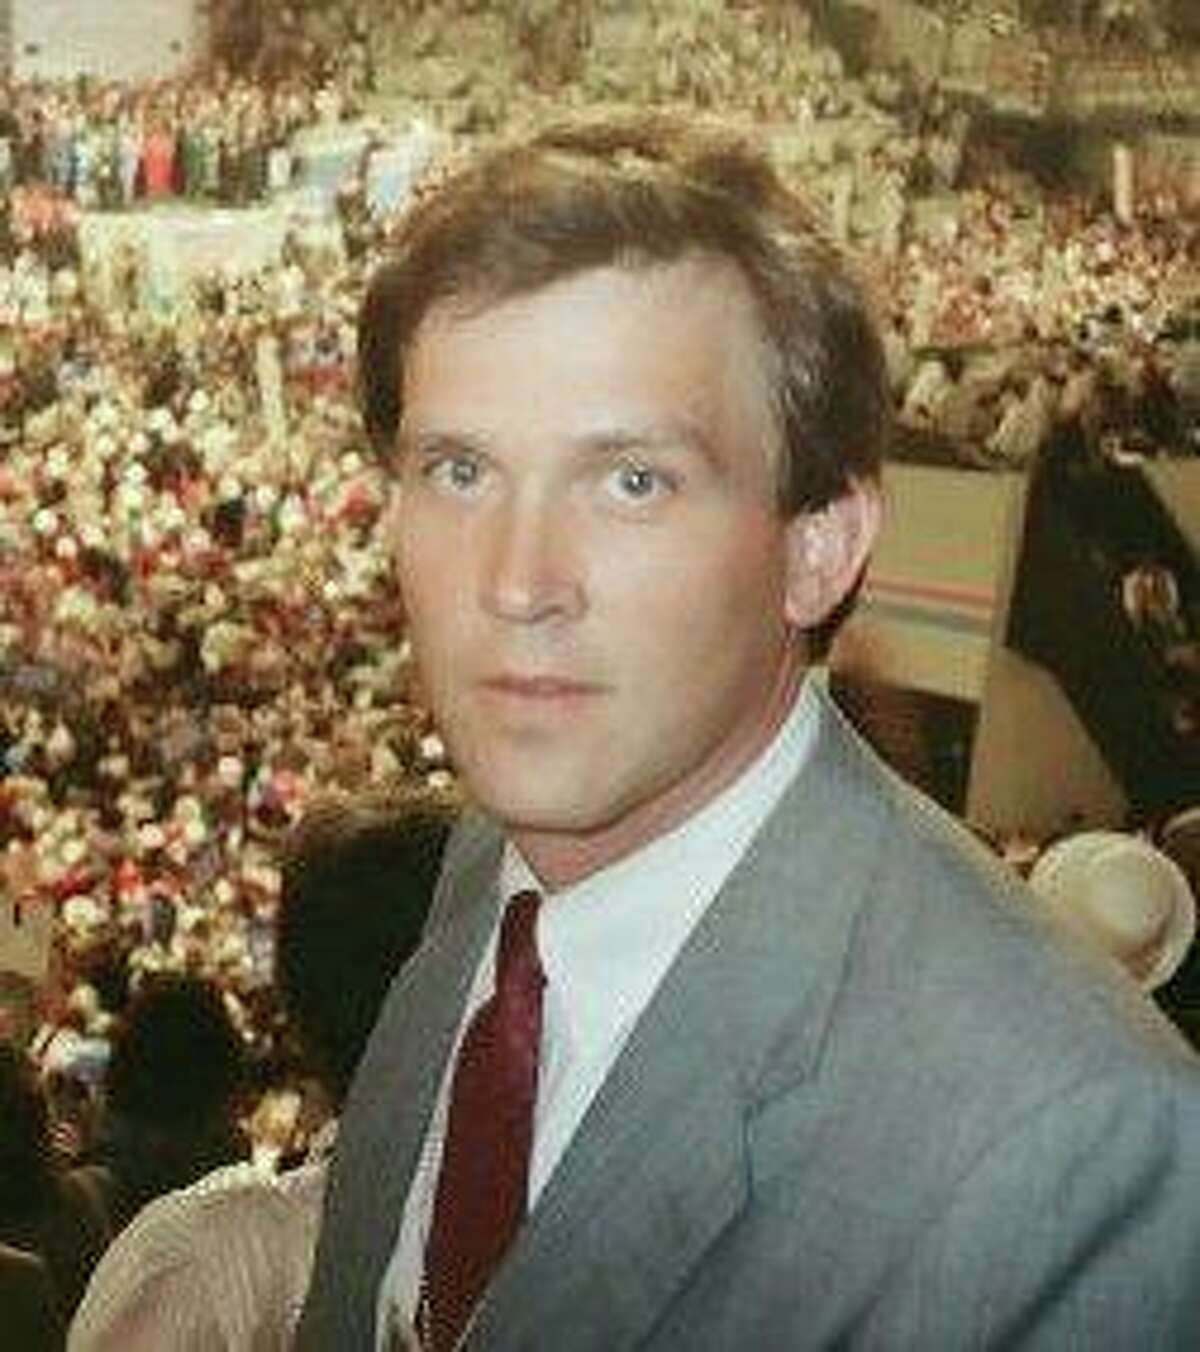 KING anchor Dennis Bounds, pictured early in his career.